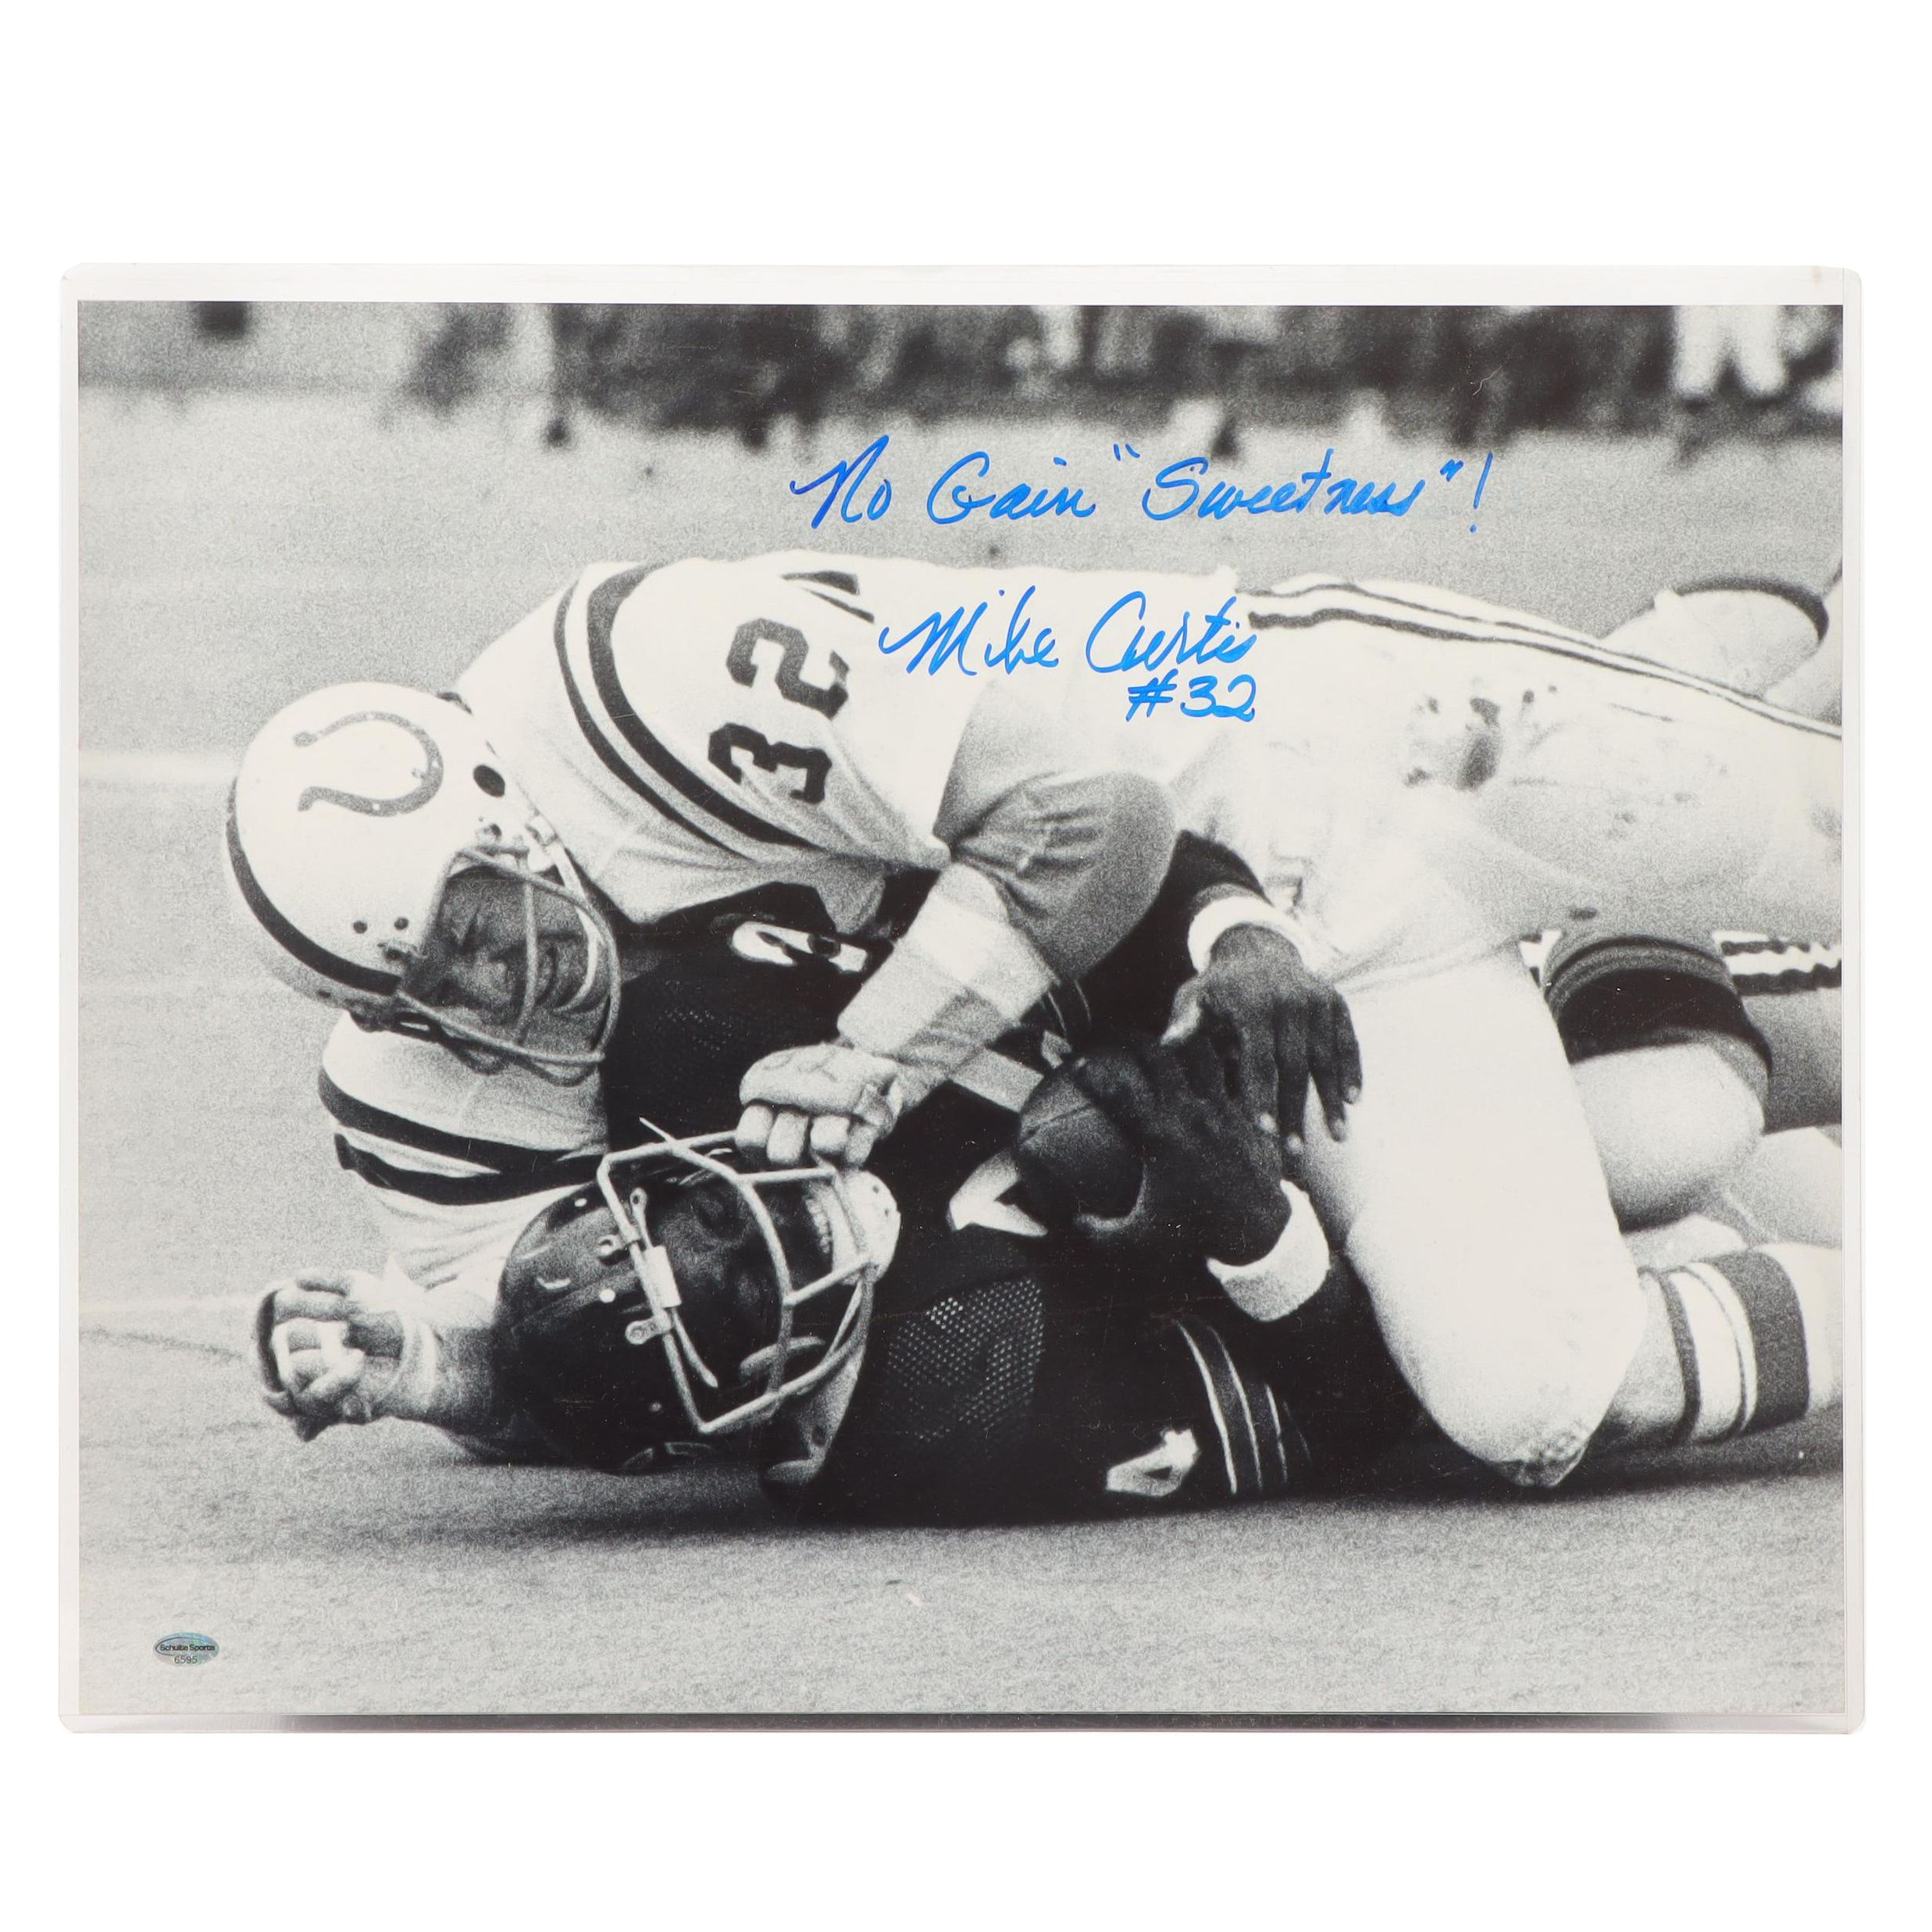 Mike Curtis, Baltimore Colt, Signed Photo Print  COA